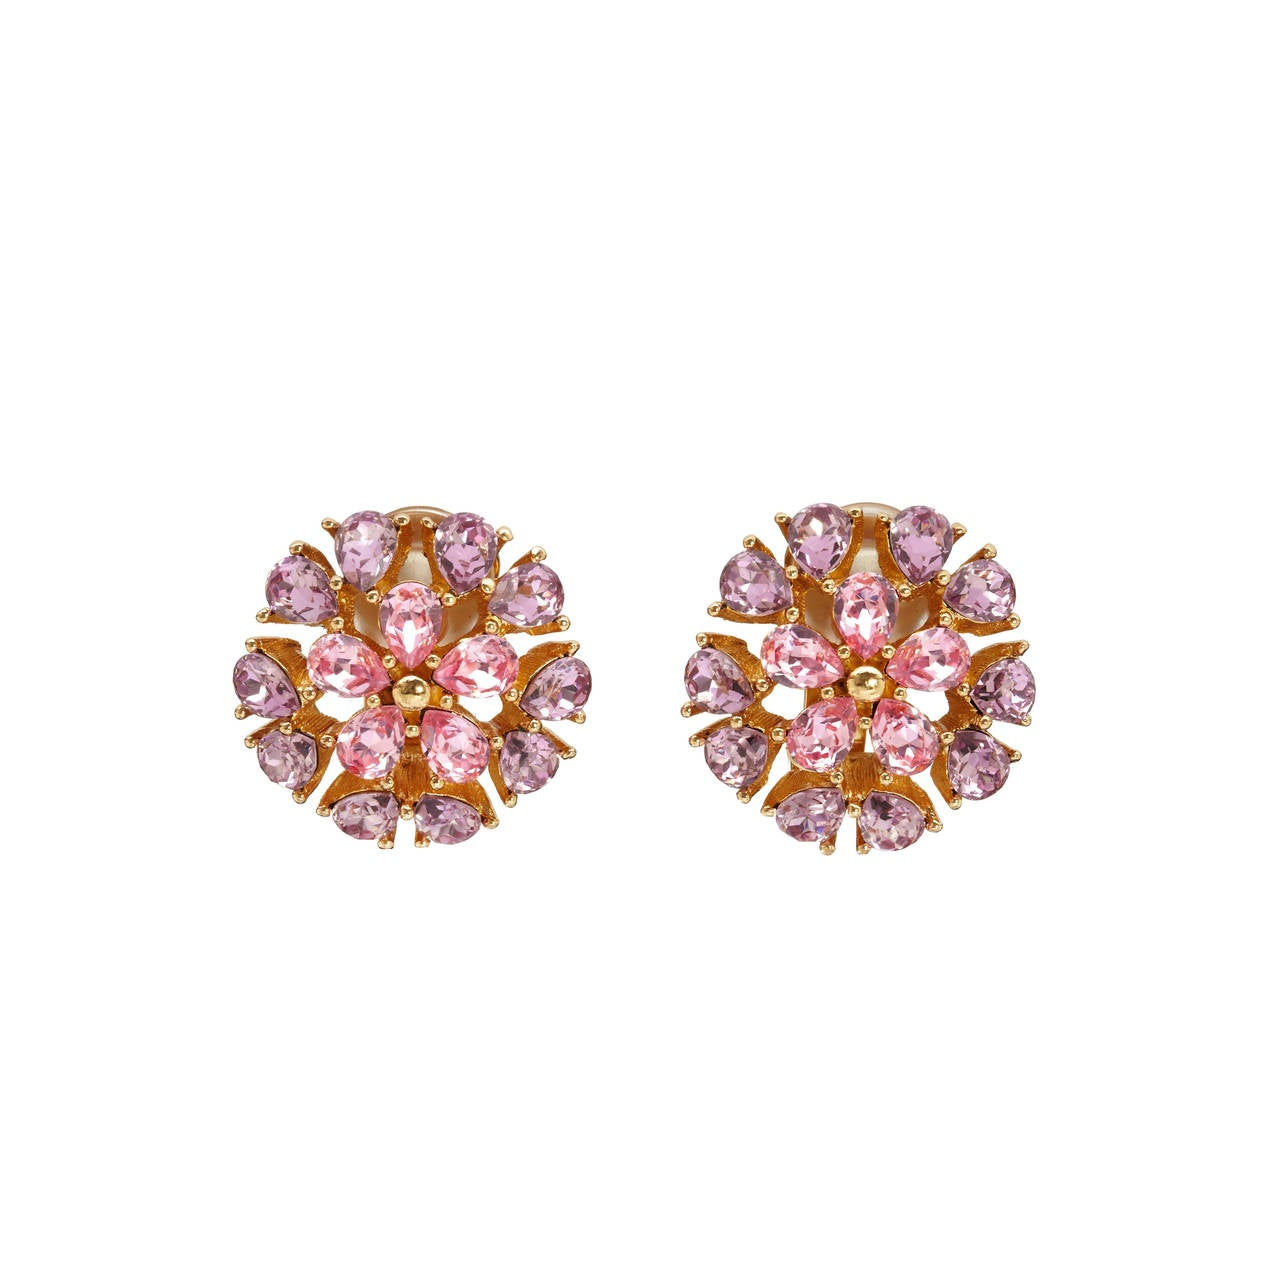 Vintage Christian Dior Pink Floral Earrings For Sale At. Expensive Earrings. Moissanite Emerald. Matching Engagement Rings. Christmas Stud Earrings. Fat Wedding Rings. 3 Carat Rings. Tire Wedding Rings. Infinity Wedding Band White Gold